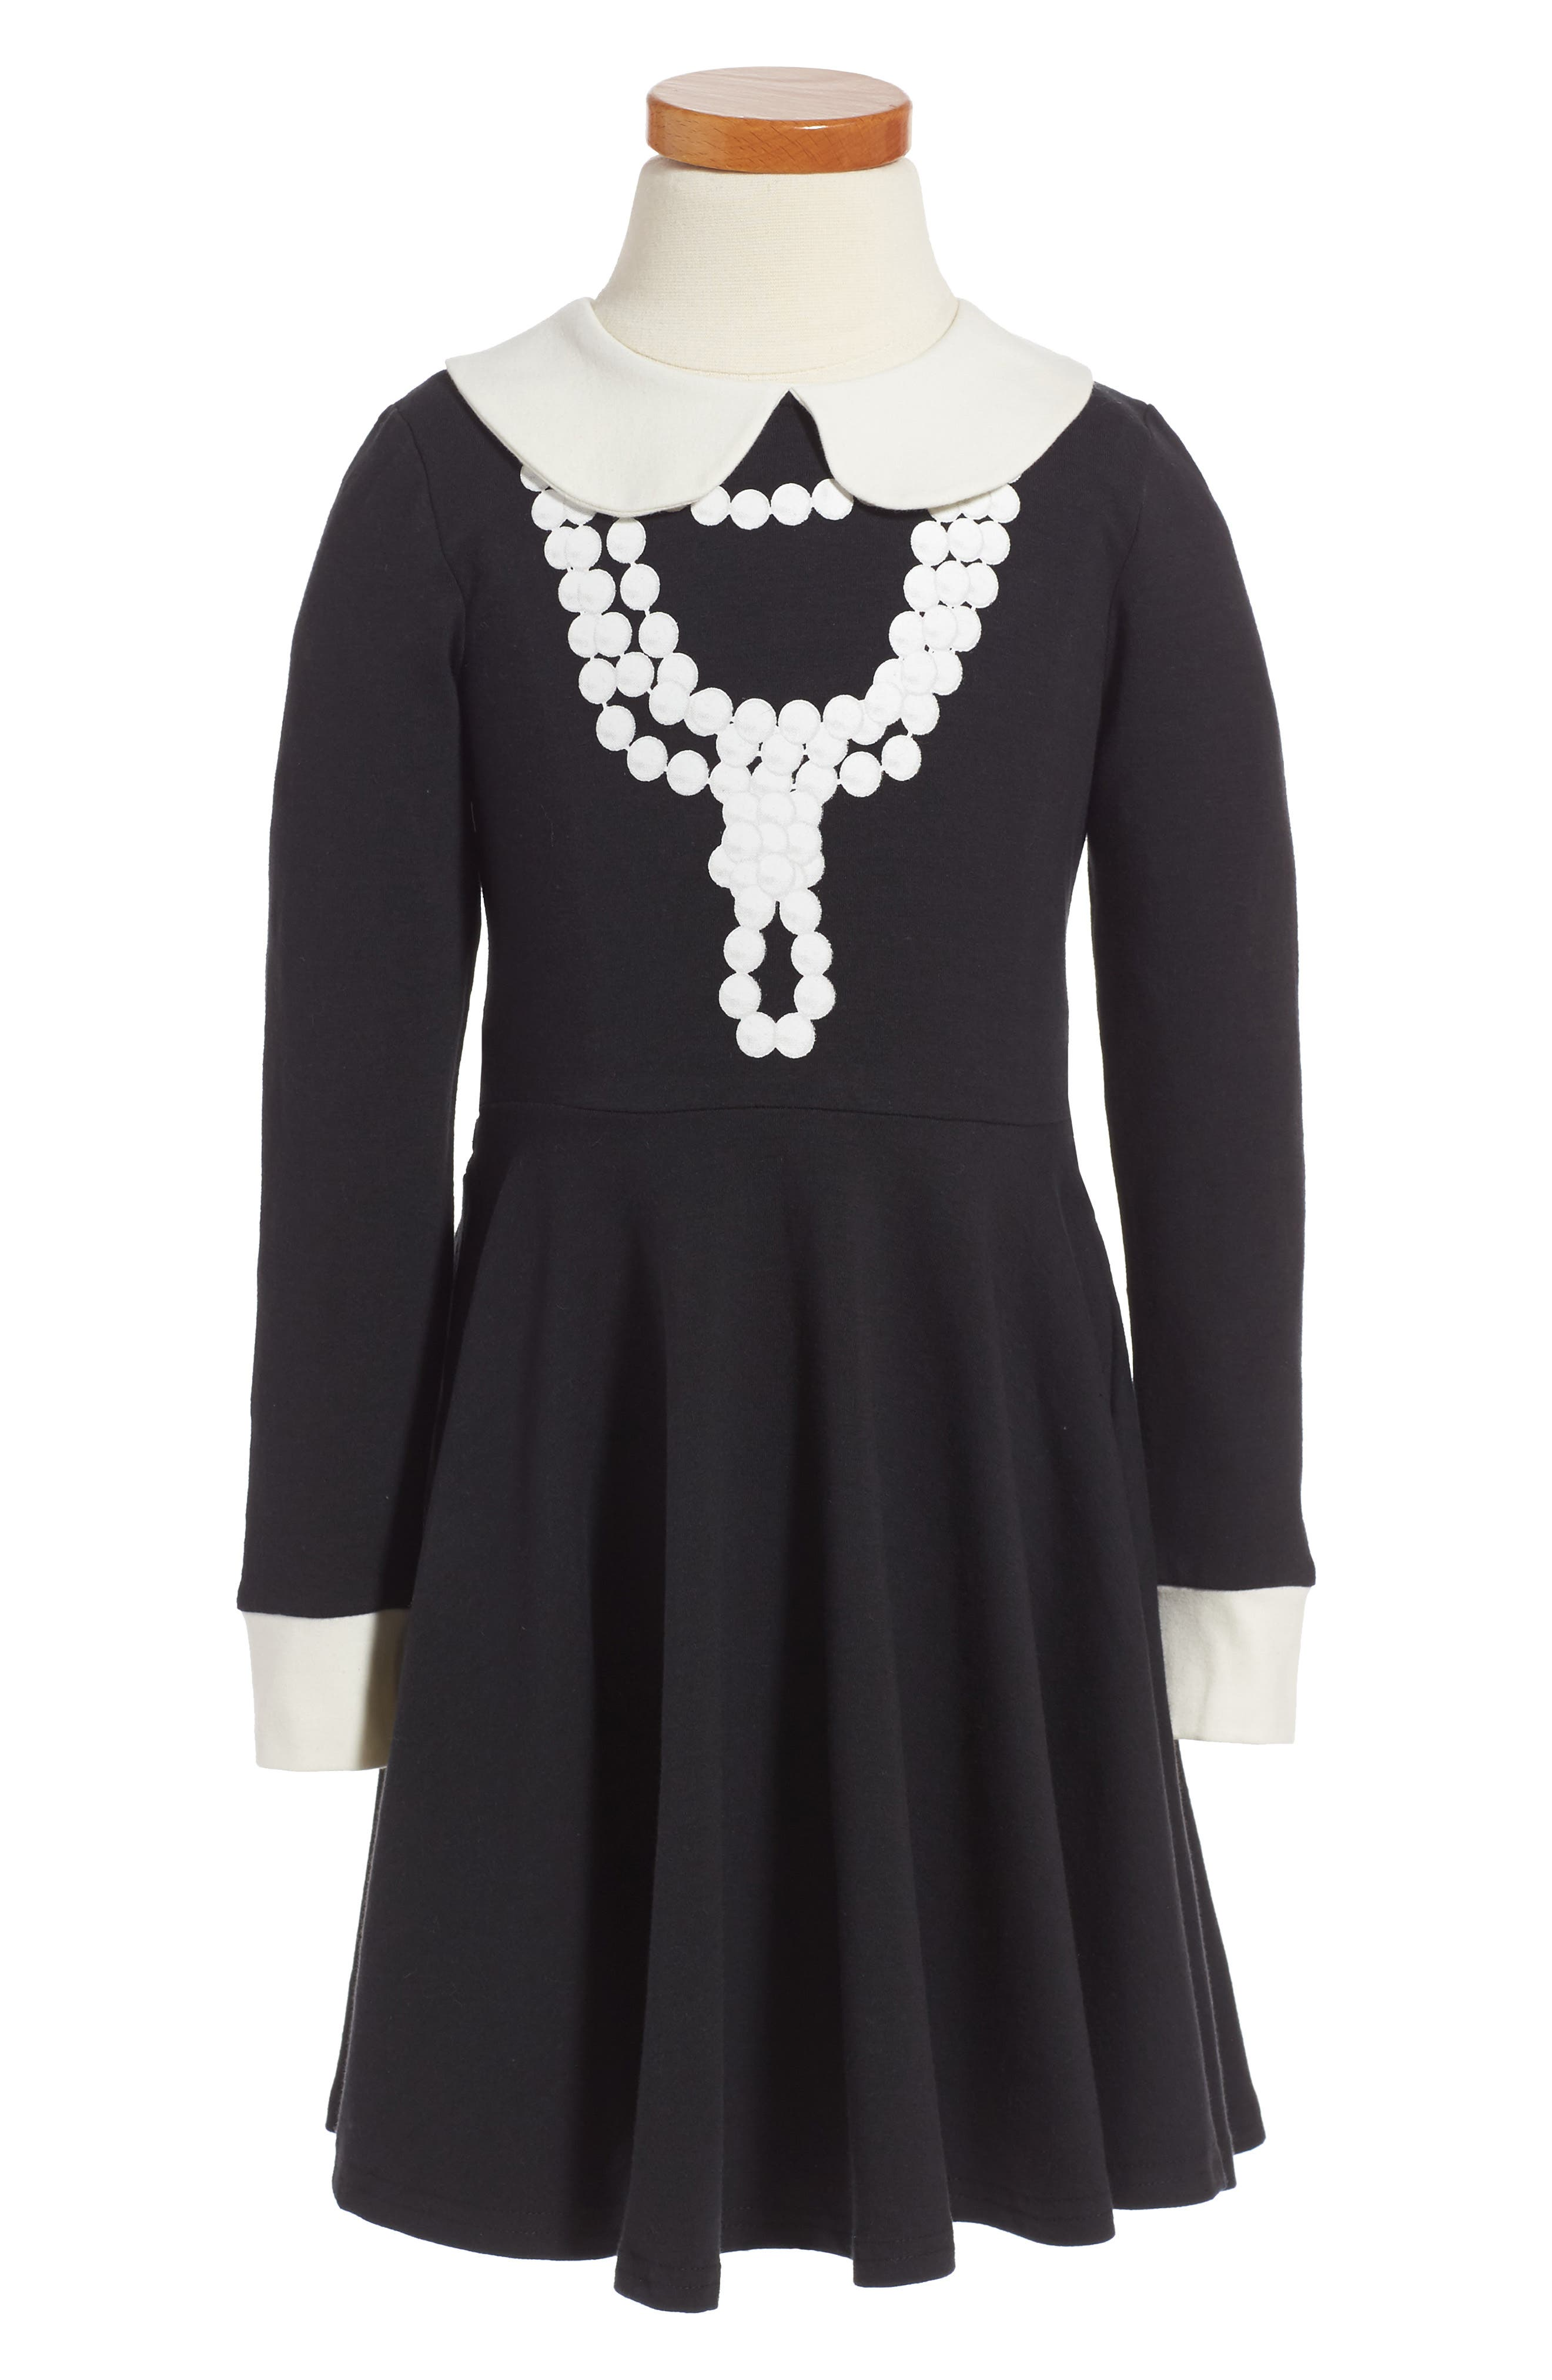 Alternate Image 1 Selected - Rock Your Kid Coco Fit & Flare Dress (Toddler Girls & Little Girls)